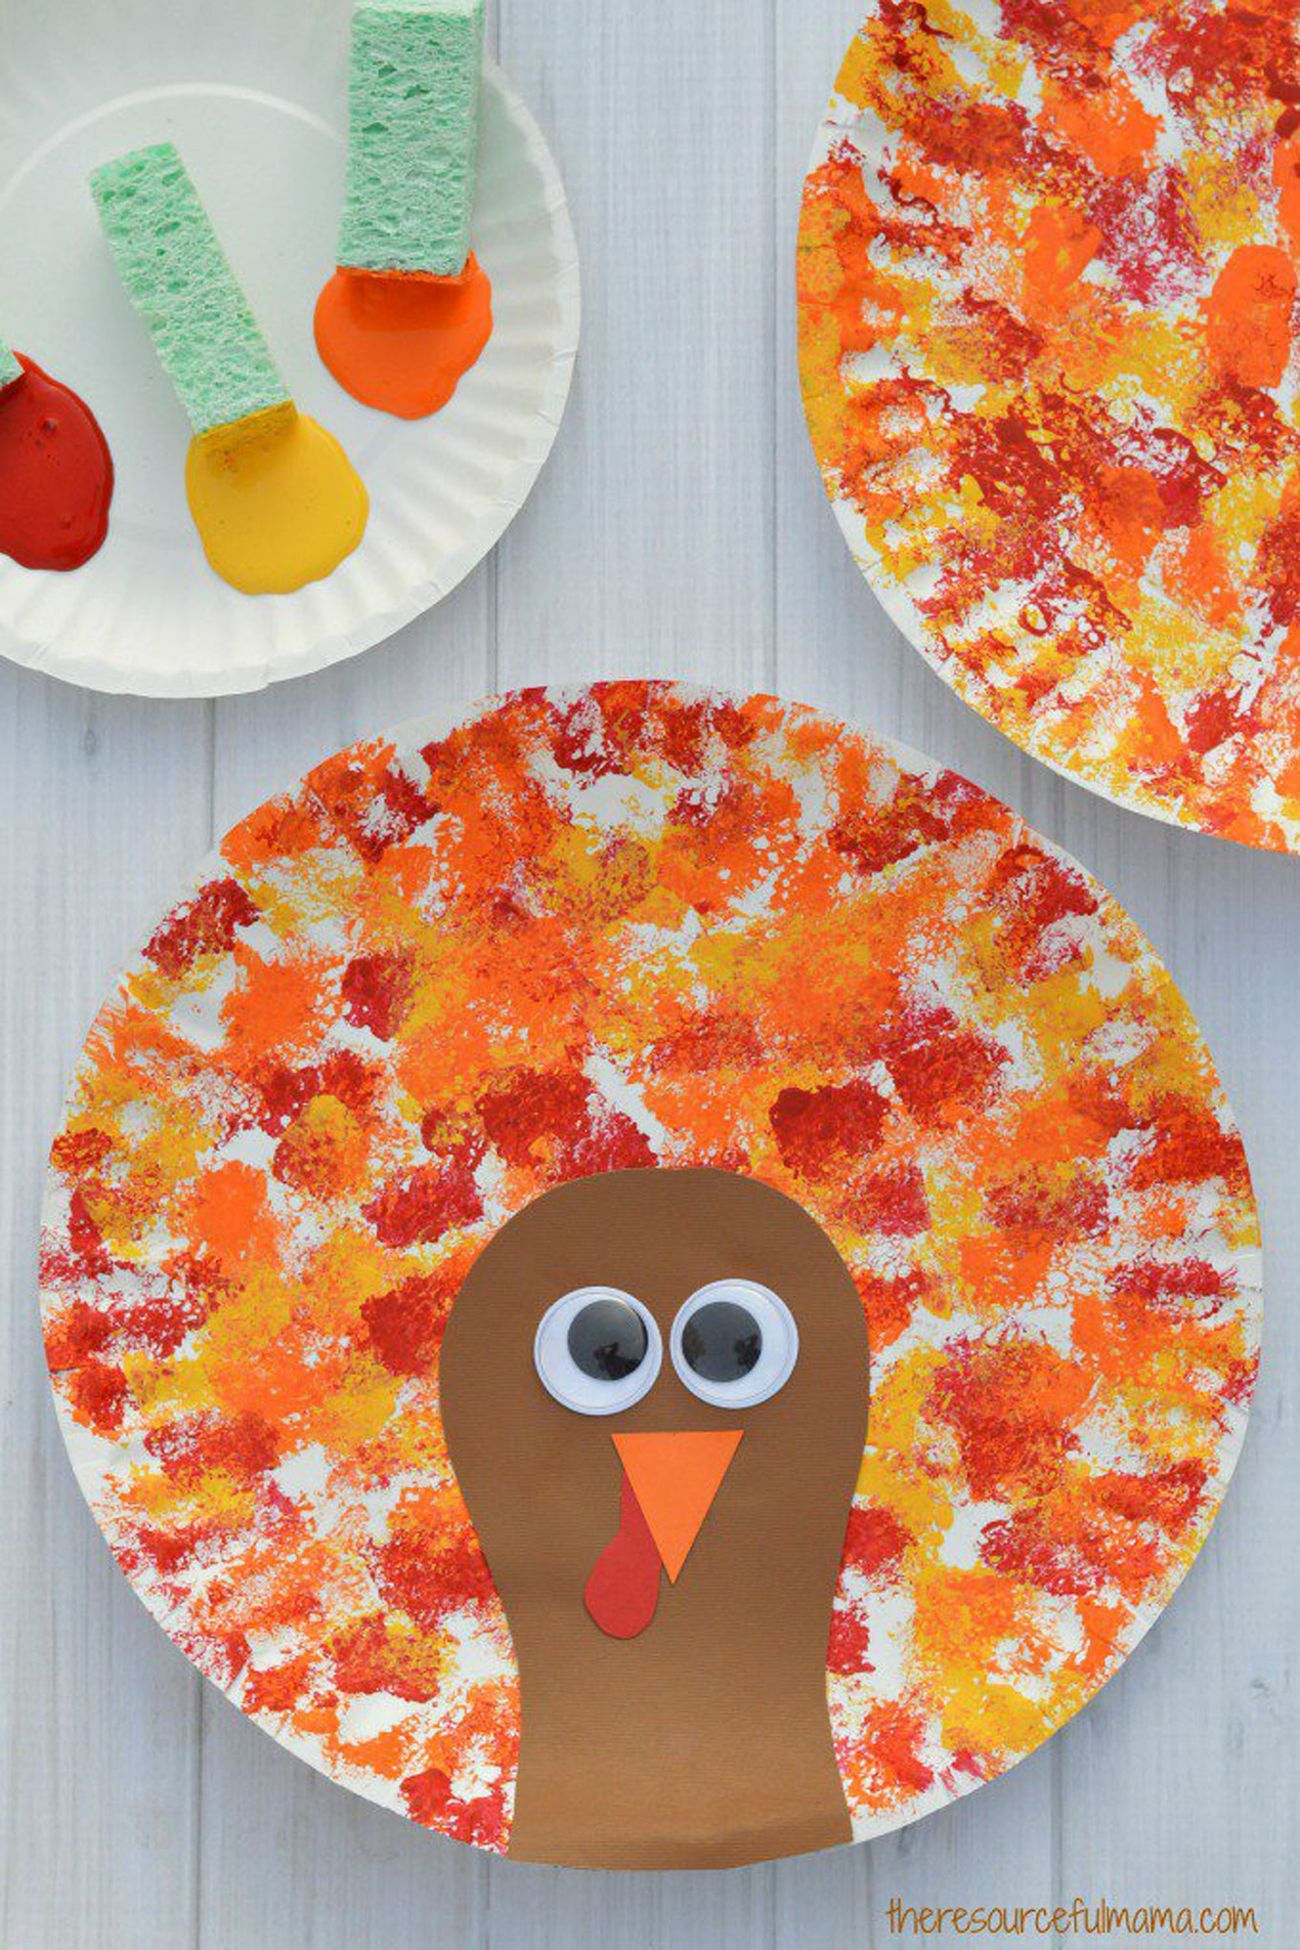 10 Crafts For Toddlers That Won't Make A Huge Mess